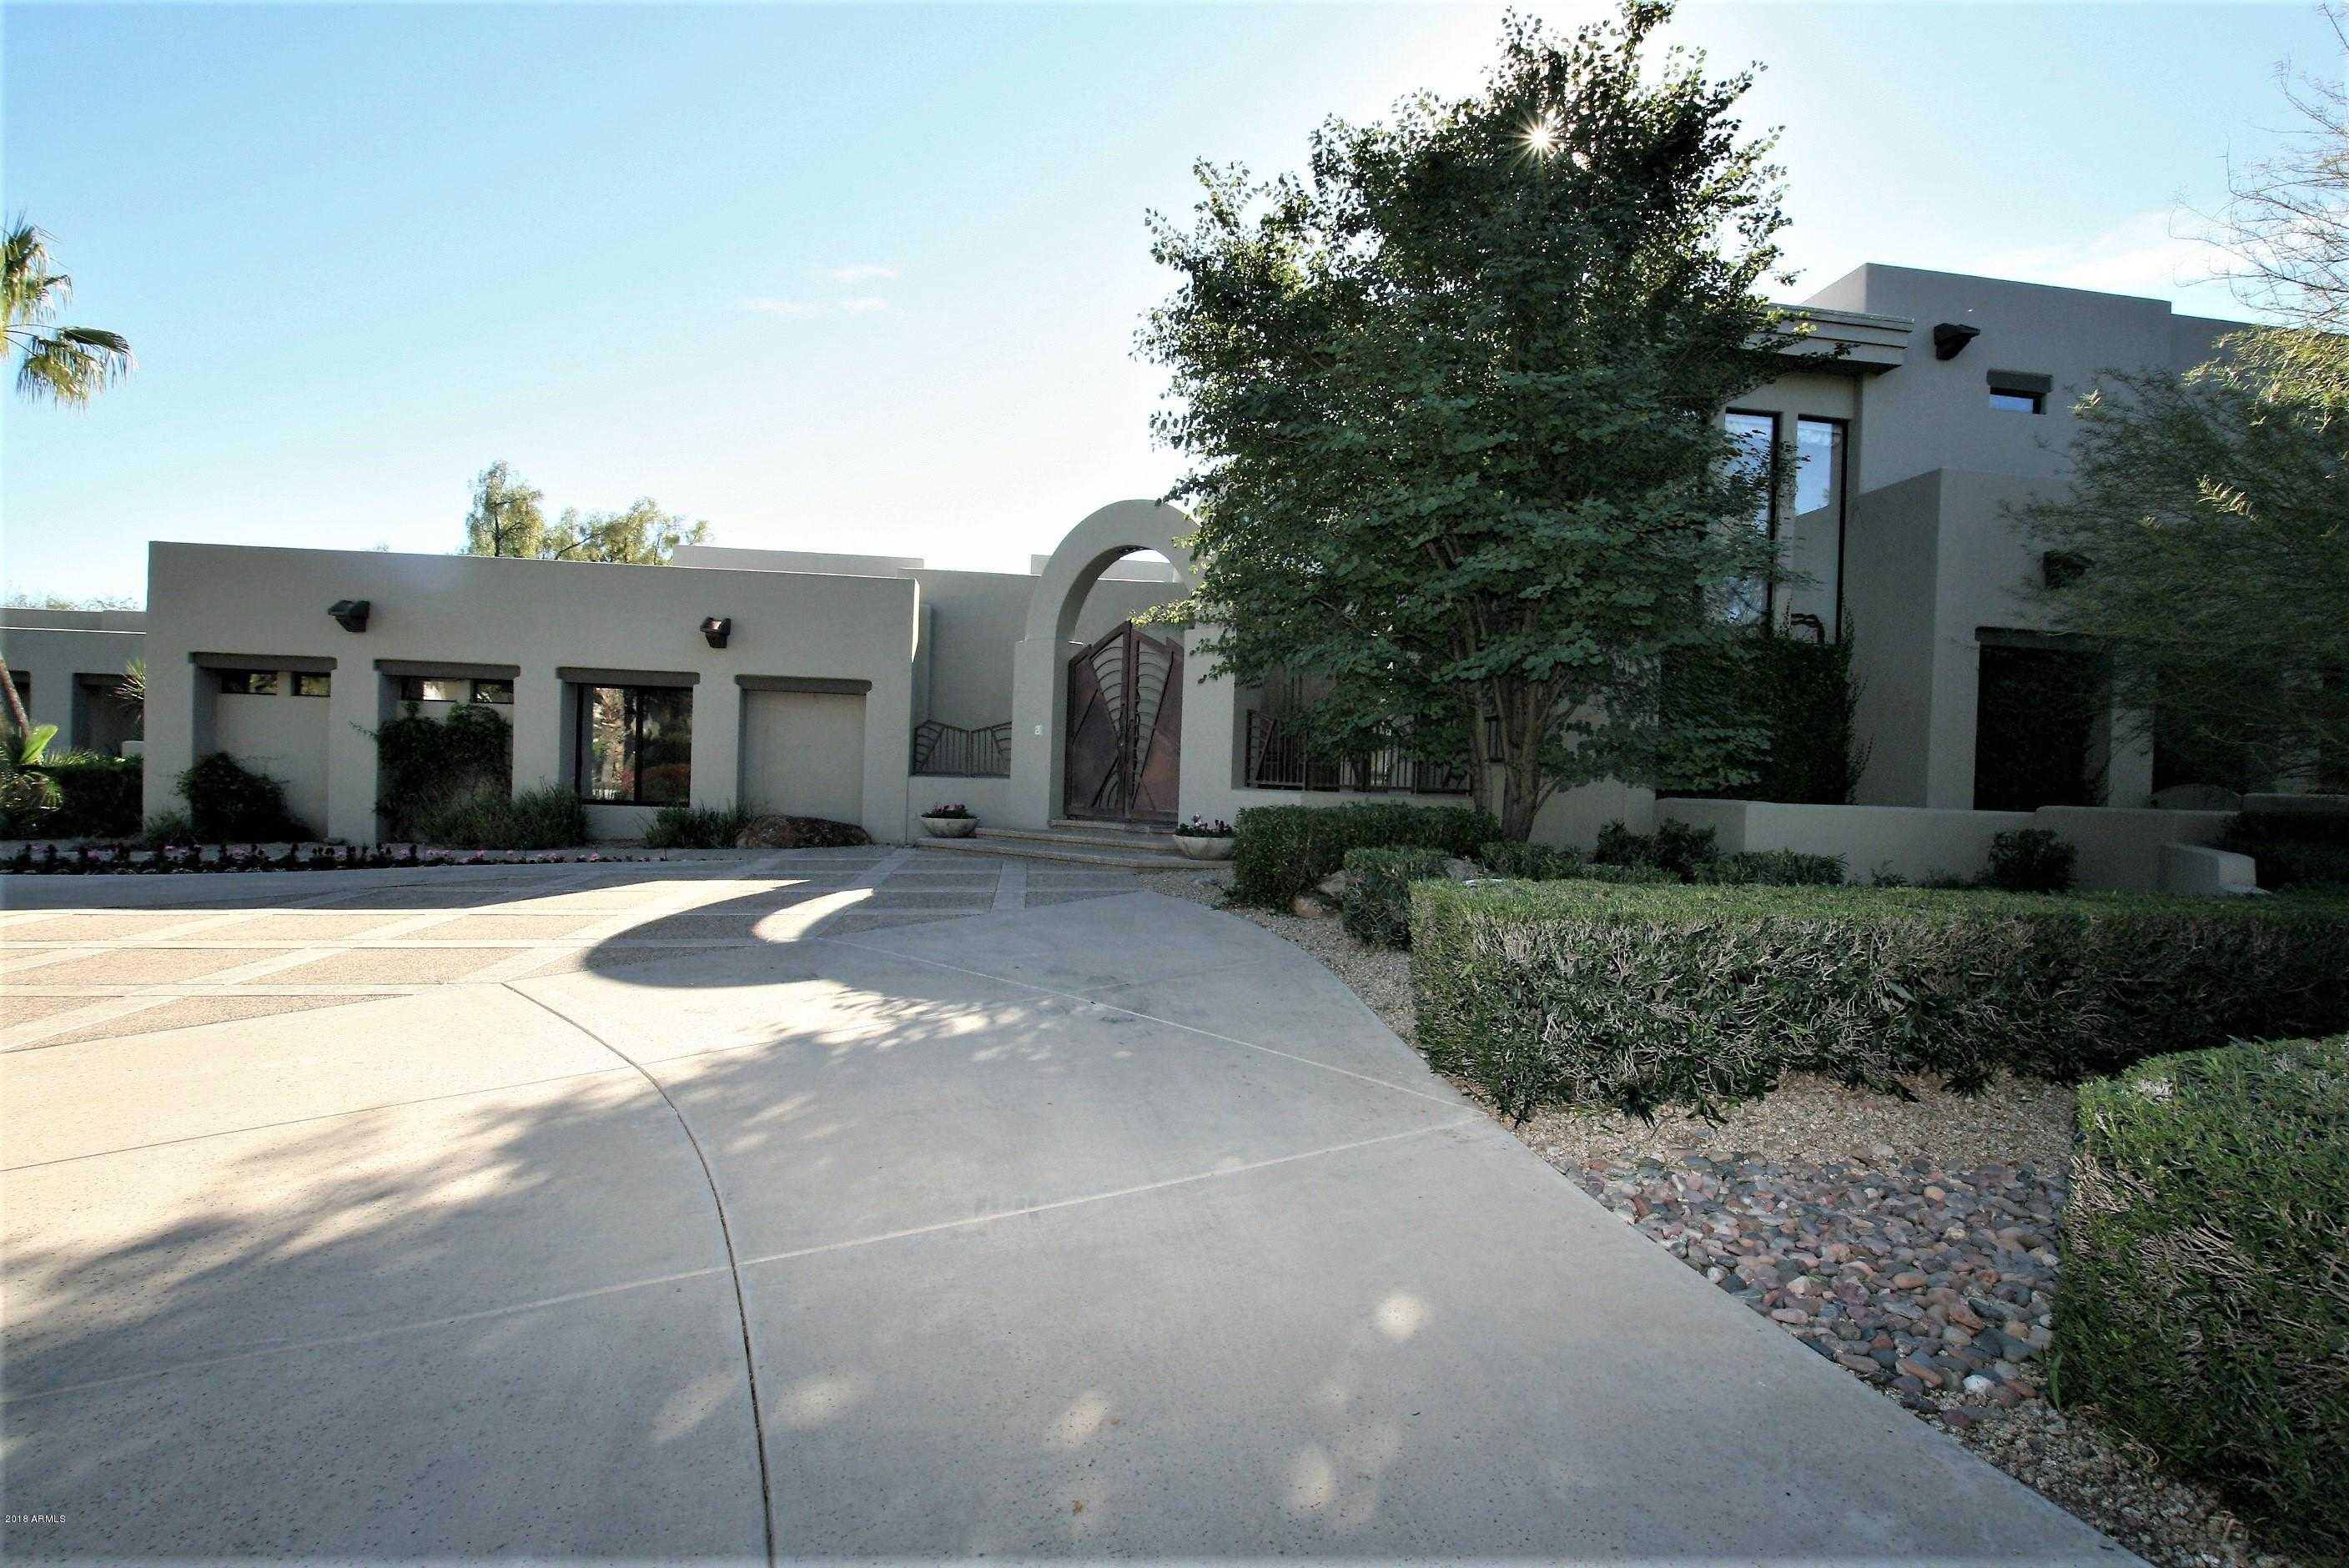 $1,995,000 - 4Br/6Ba - Home for Sale in Paradise Valley Pueblos Amd Lot 1-3, Paradise Valley